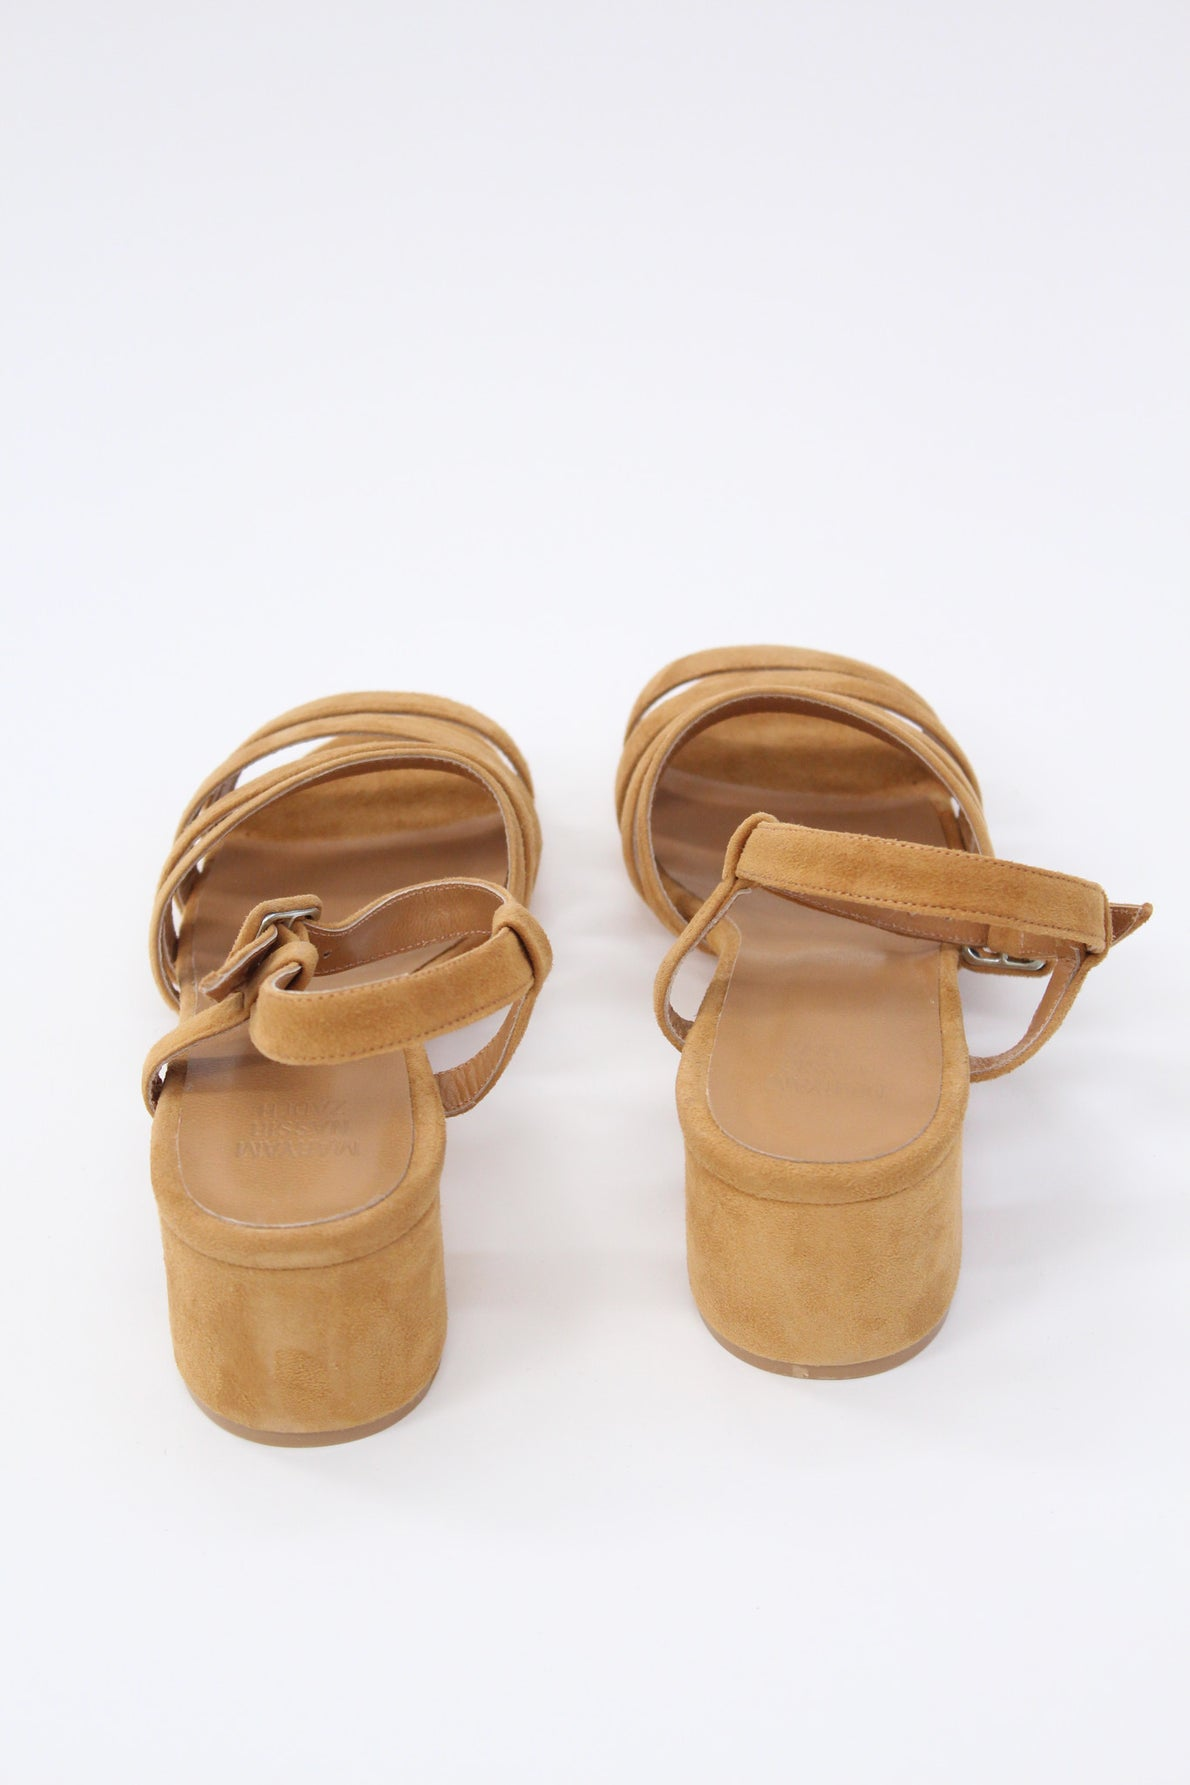 Maryam Nassir Zadeh Palma Low Heel Brown Suede